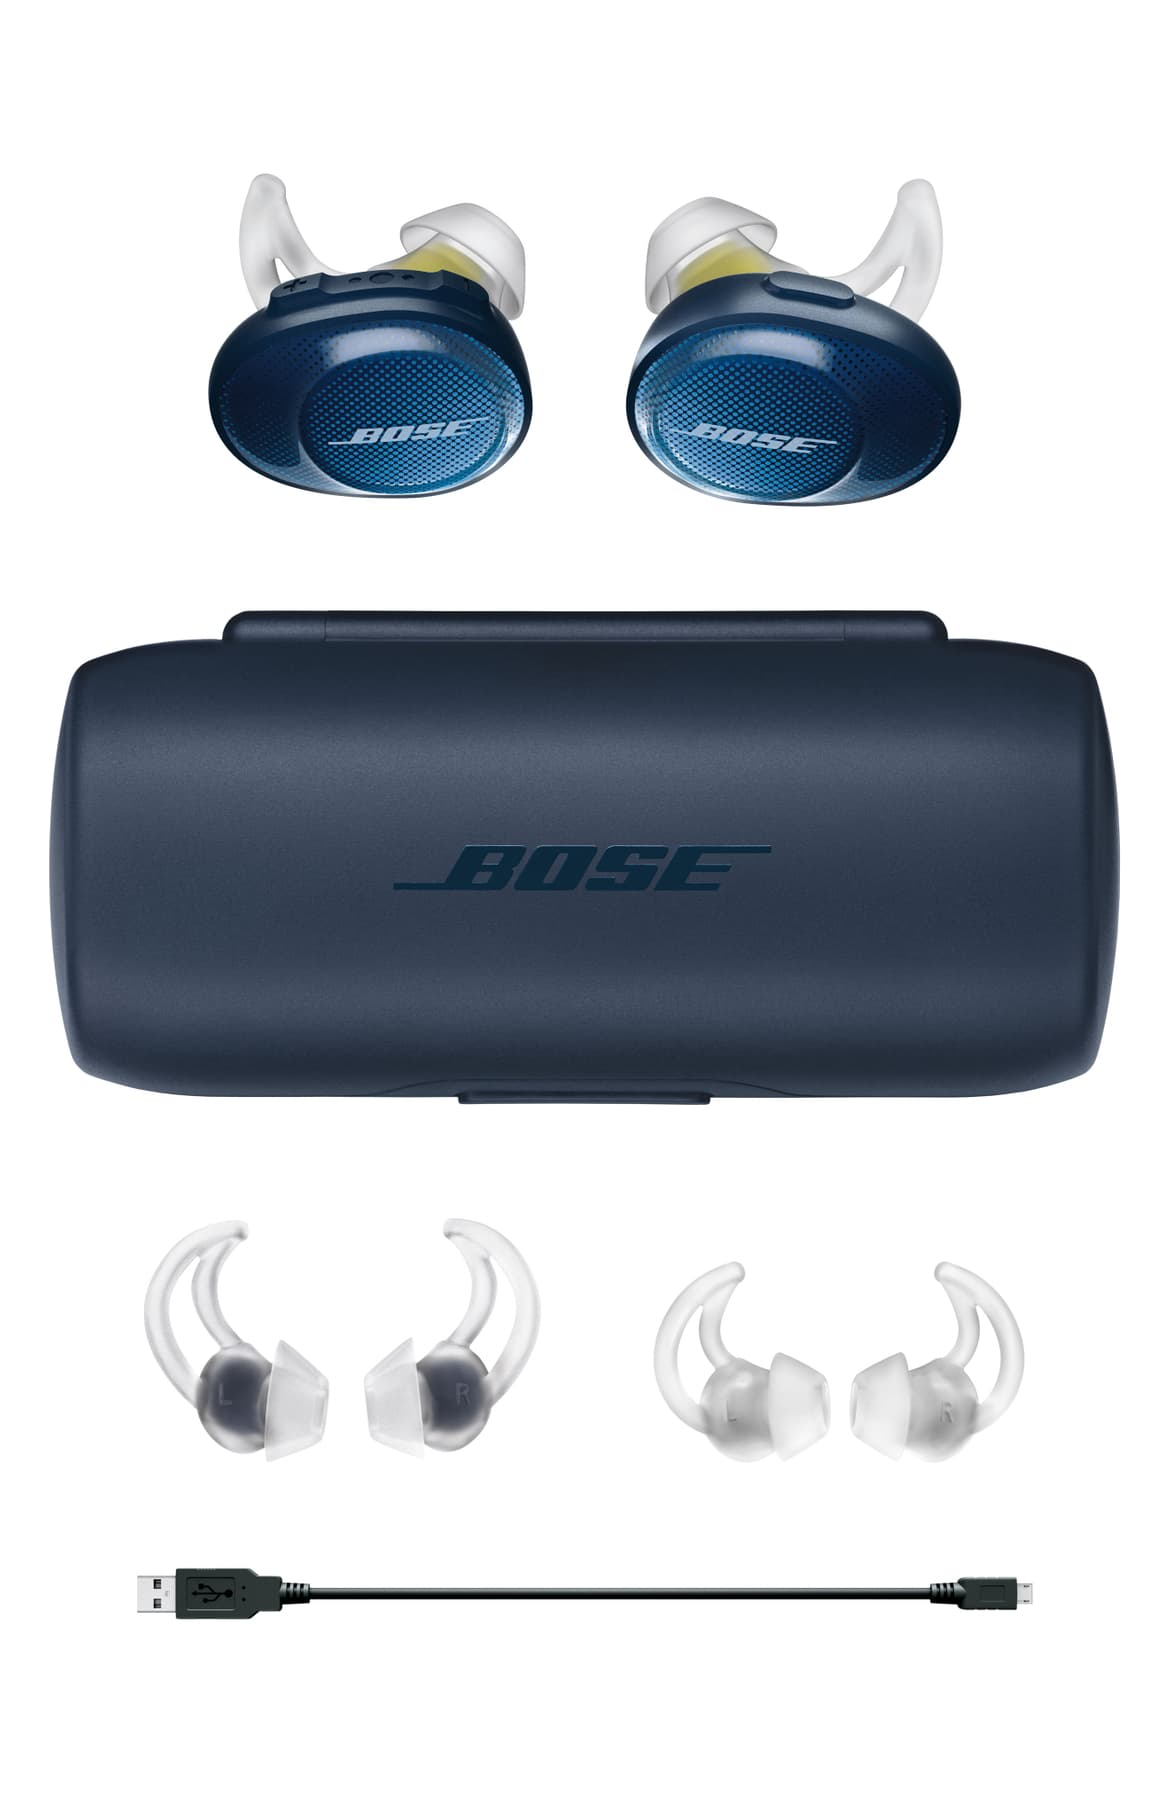 <p>Take his workout wireless with these high-performance ear buds that are optimized for active use - the added bonus is that they look really cool. $199.00 at Nordstom. (Image: Nordstrom){&nbsp;}</p><p></p>